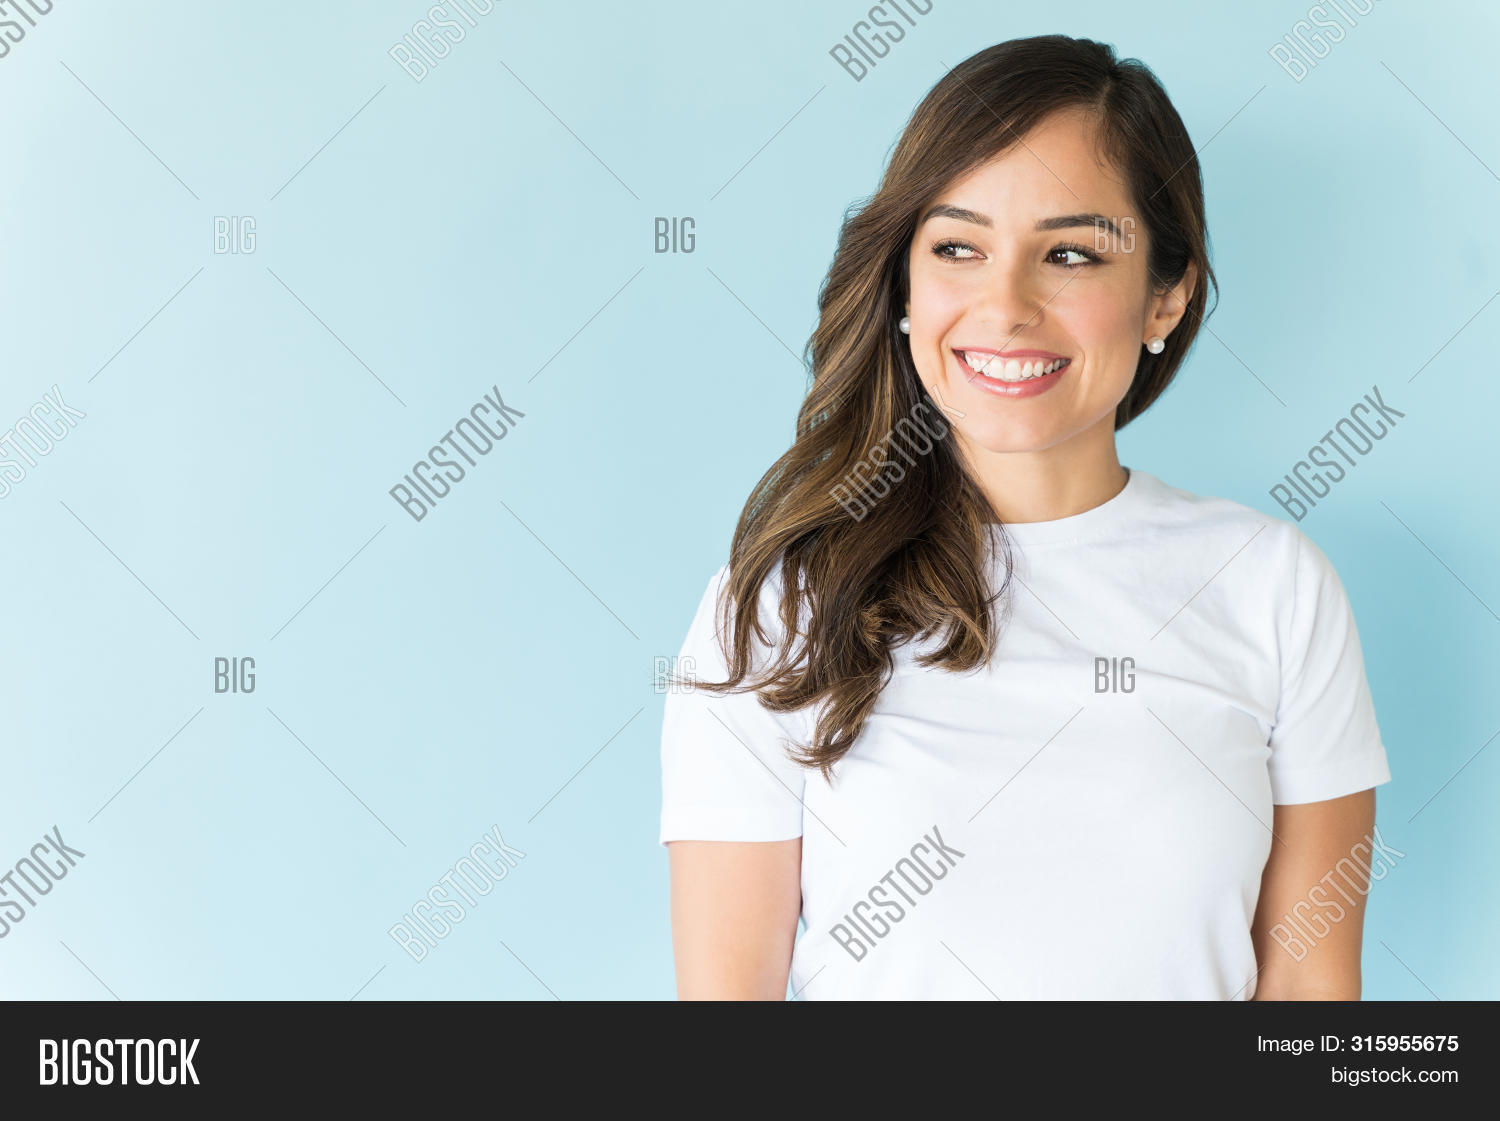 30s,Adult,Away,Background,Beautiful,Beauty,Blue,Brown,Casual,Caucasian,Confident,Contemplation,Copy,Cutout,Fashion,Front,Hair,Happy,Isolated,Lifestyle,Long,Looking,Makeup,Mid,Model,One,Person,Pretty,Proud,Smiling,Space,Standing,Studio,View,Waistup,White,Woman